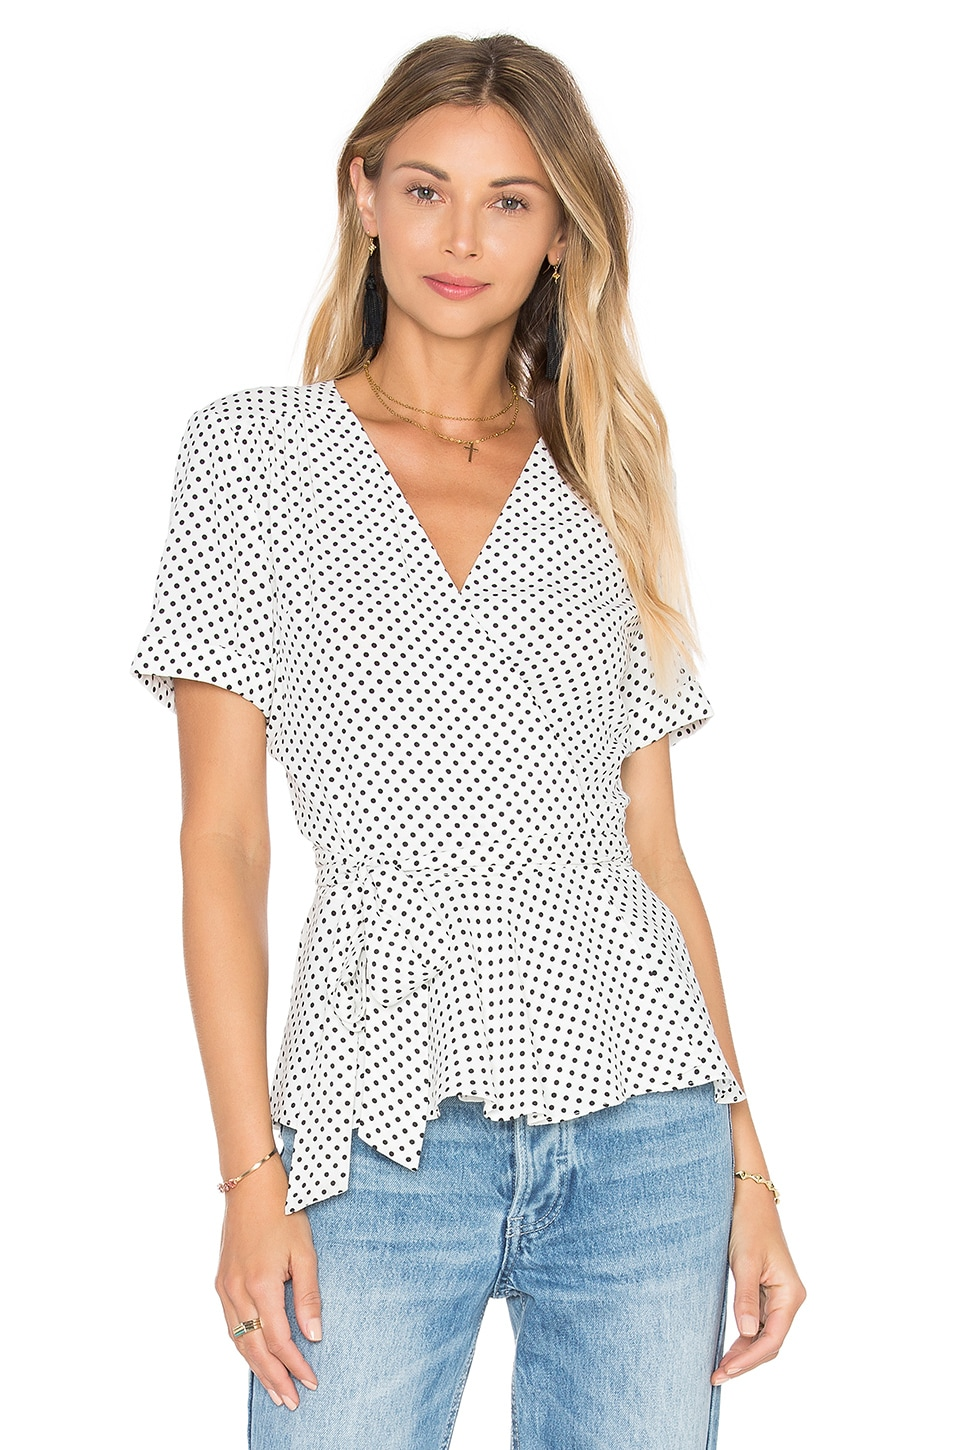 L'Academie The Retro Wrap Blouse in Dot